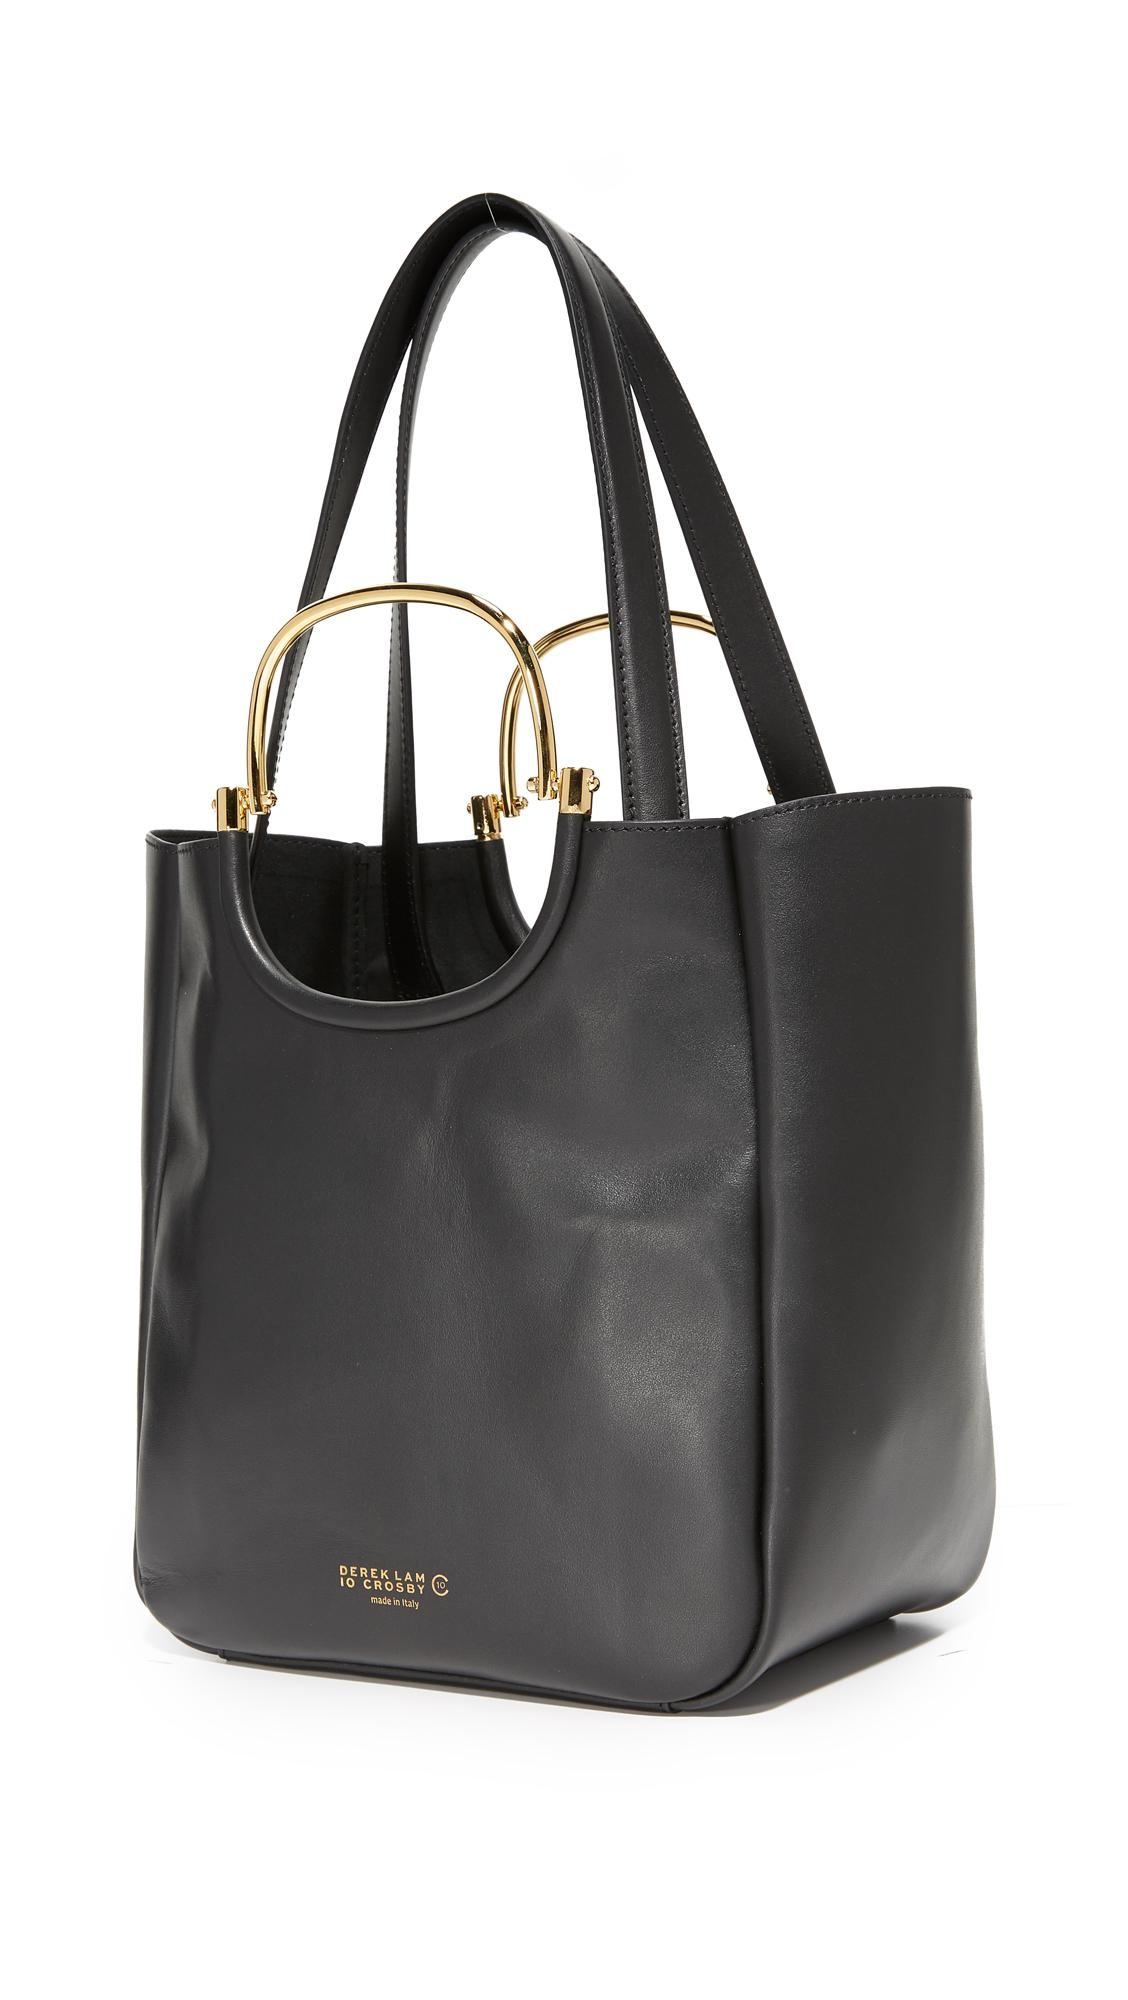 10 Crosby Derek Lam Leather Mini Hudson Tote in Black